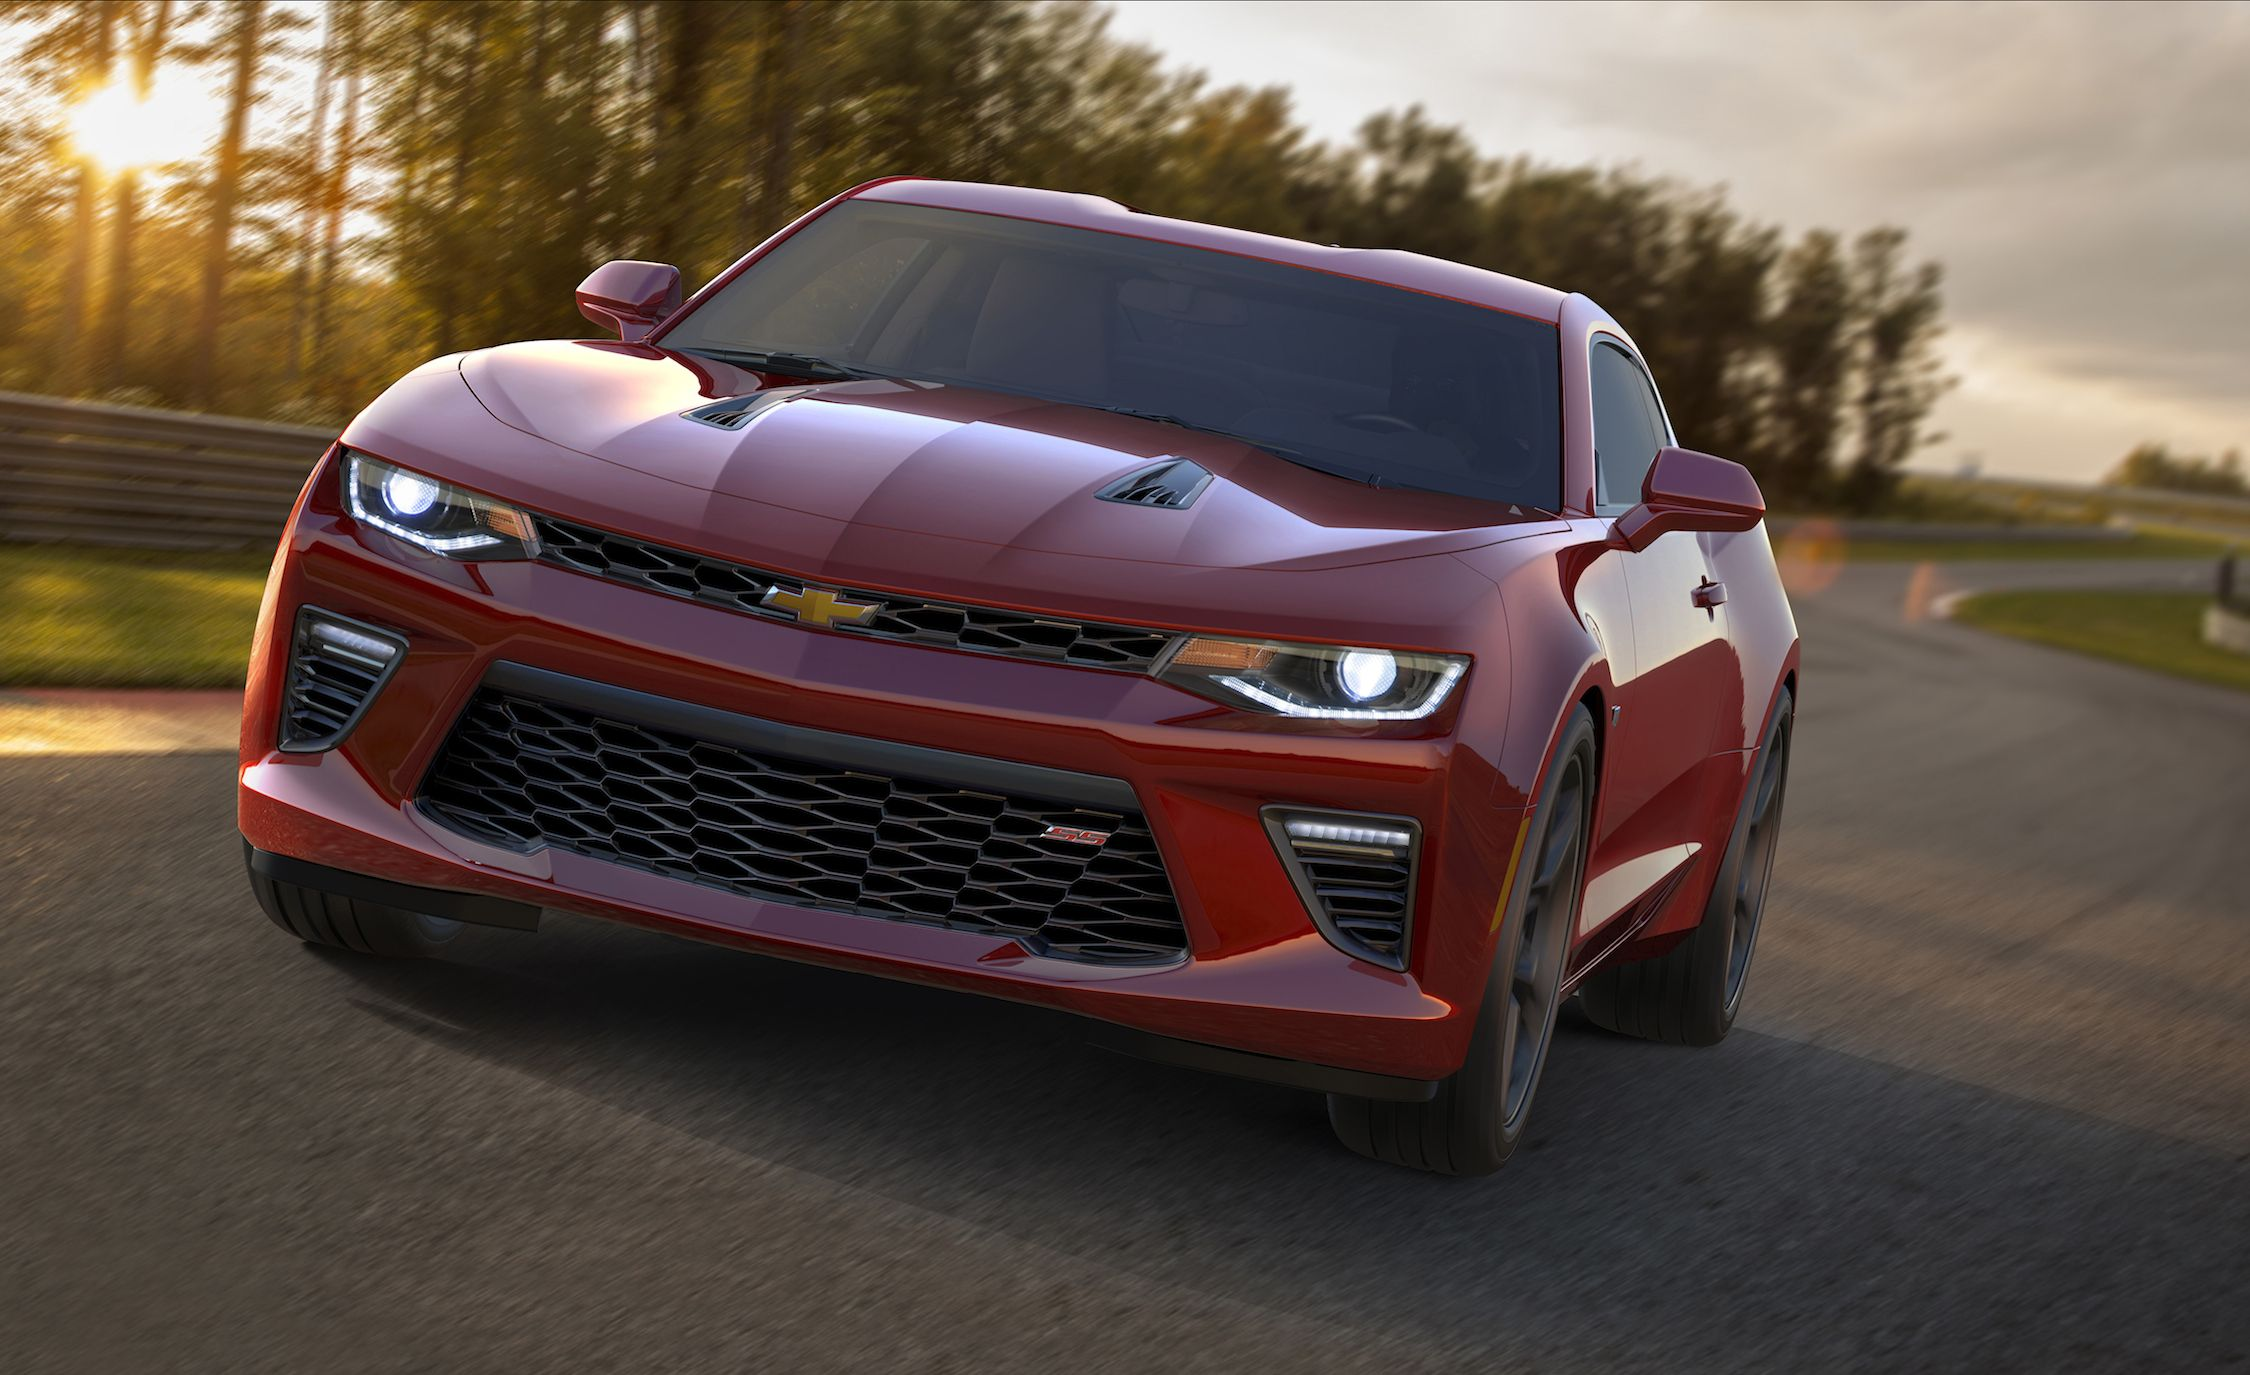 11 Surprising Facts About the New Camaro | Flipbook | Car and Driver